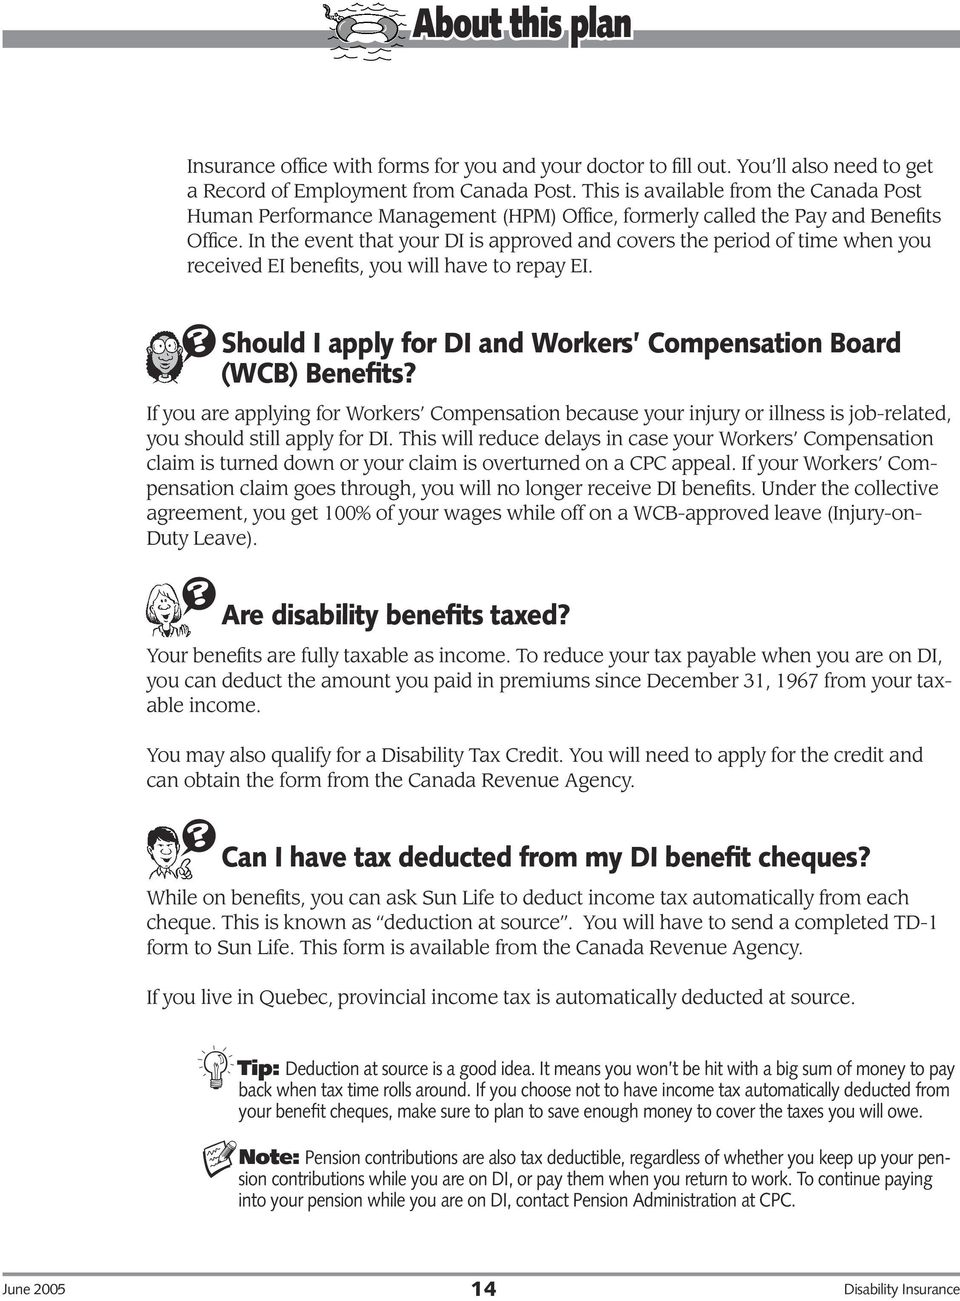 In the event that your DI is approved and covers the period of time when you received EI benefits, you will have to repay EI. Should I apply for DI and Workers Compensation Board (WCB) Benefits?